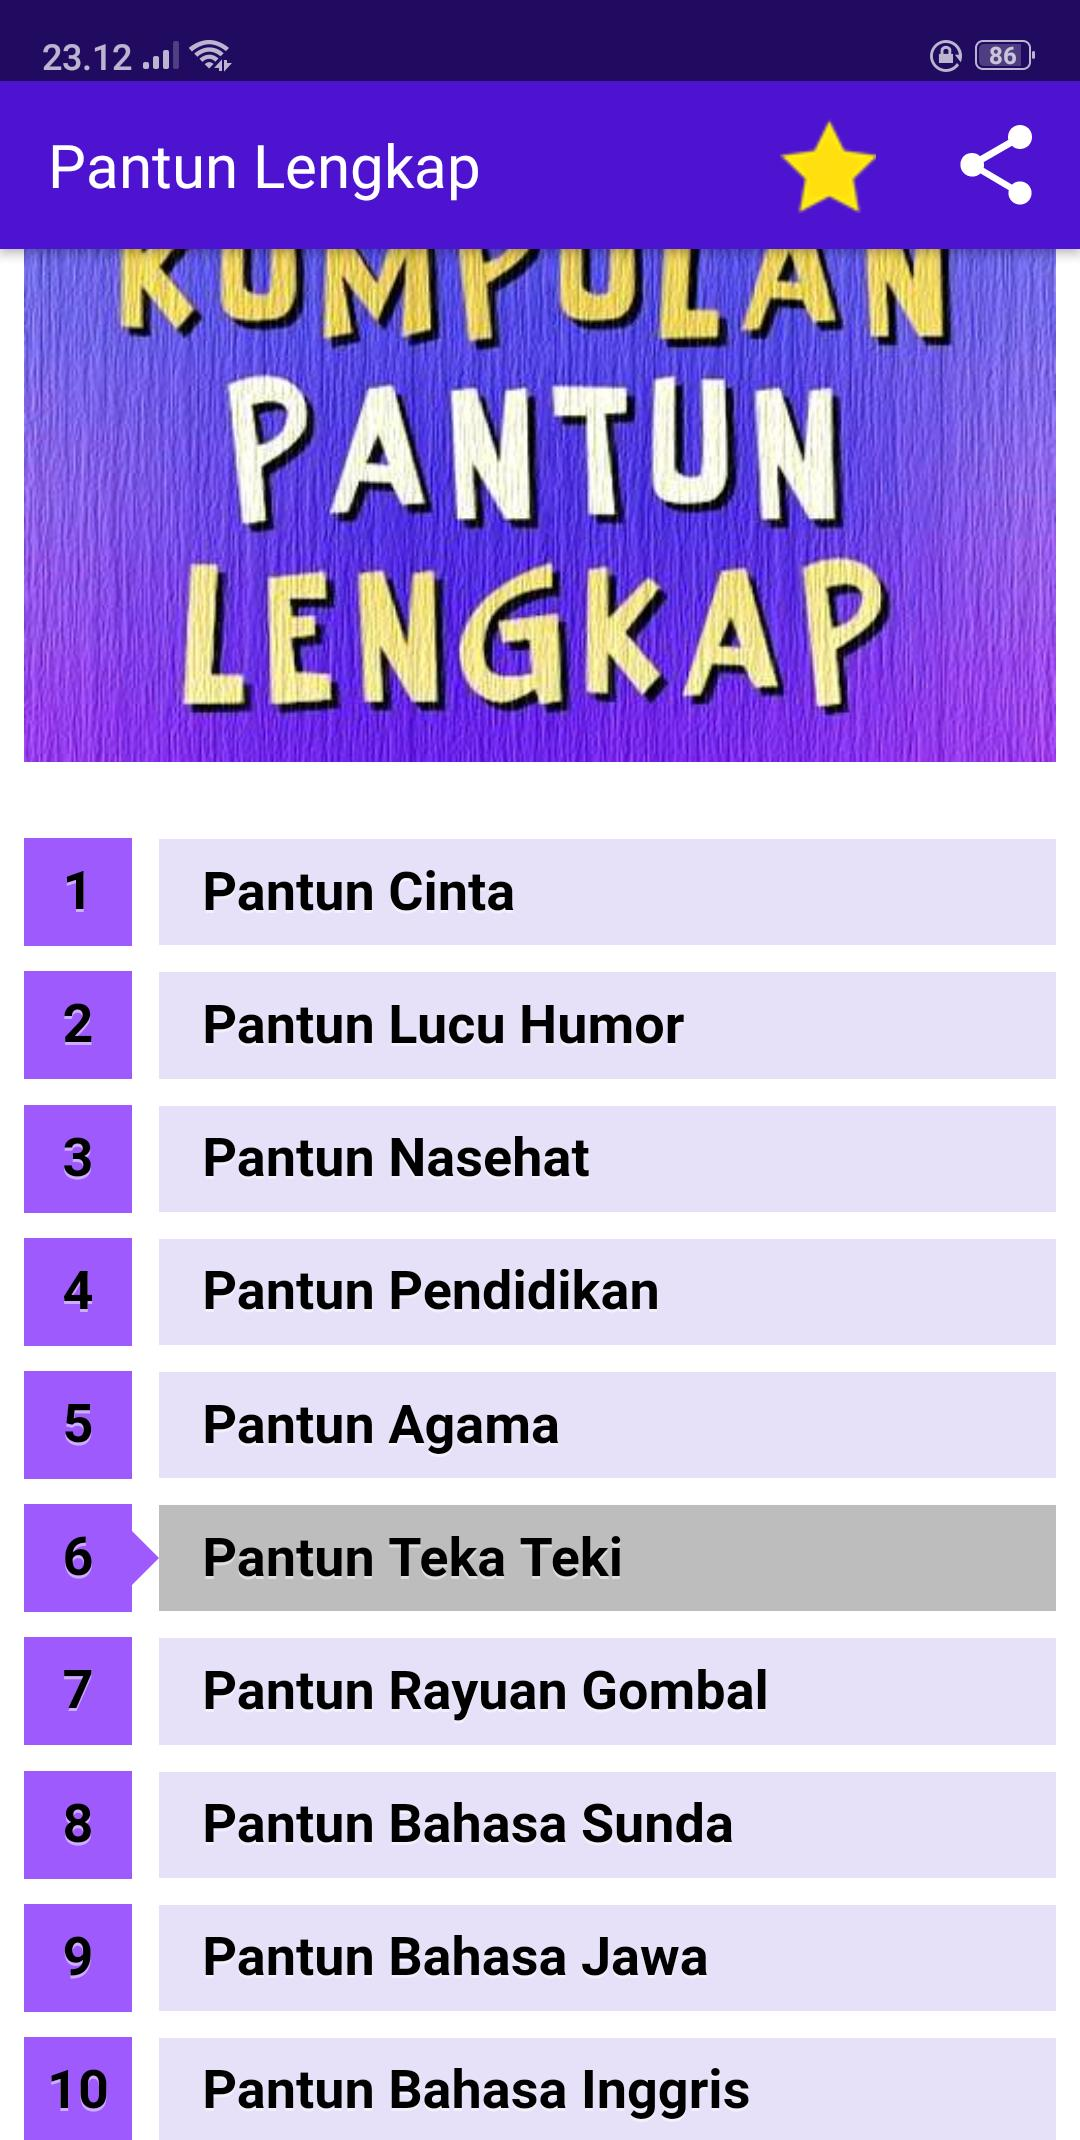 Kumpulan Pantun Lengkap fline for Android APK Download